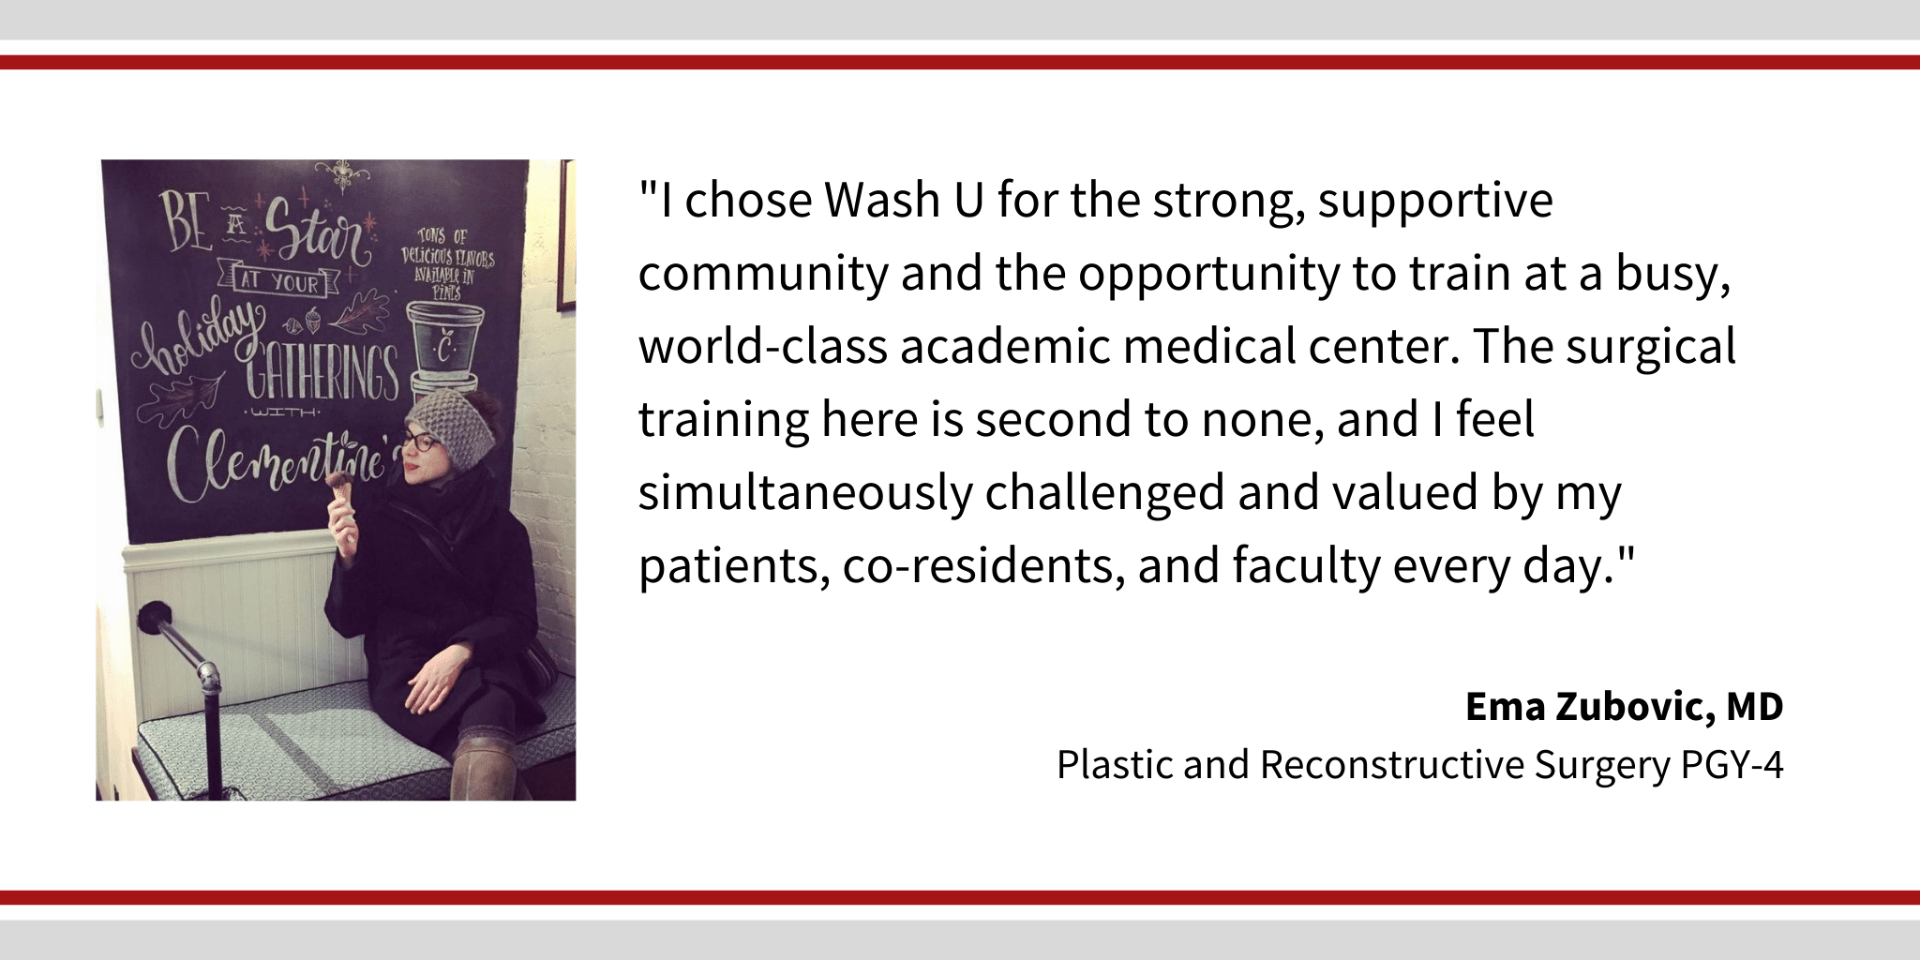 "When asked, ""Why did you choose Washington University,"" Ema Zubovic, PGY-4 plastic and reconstructive surgery resident says, ""I chose Wash U for the strong, supportive community and the opportunity to train at a busy, world-class academic medical center. The surgical training here is second to none, and I feel simultaneously challenged and valued by my patients, co-residents, and faculty every day."""